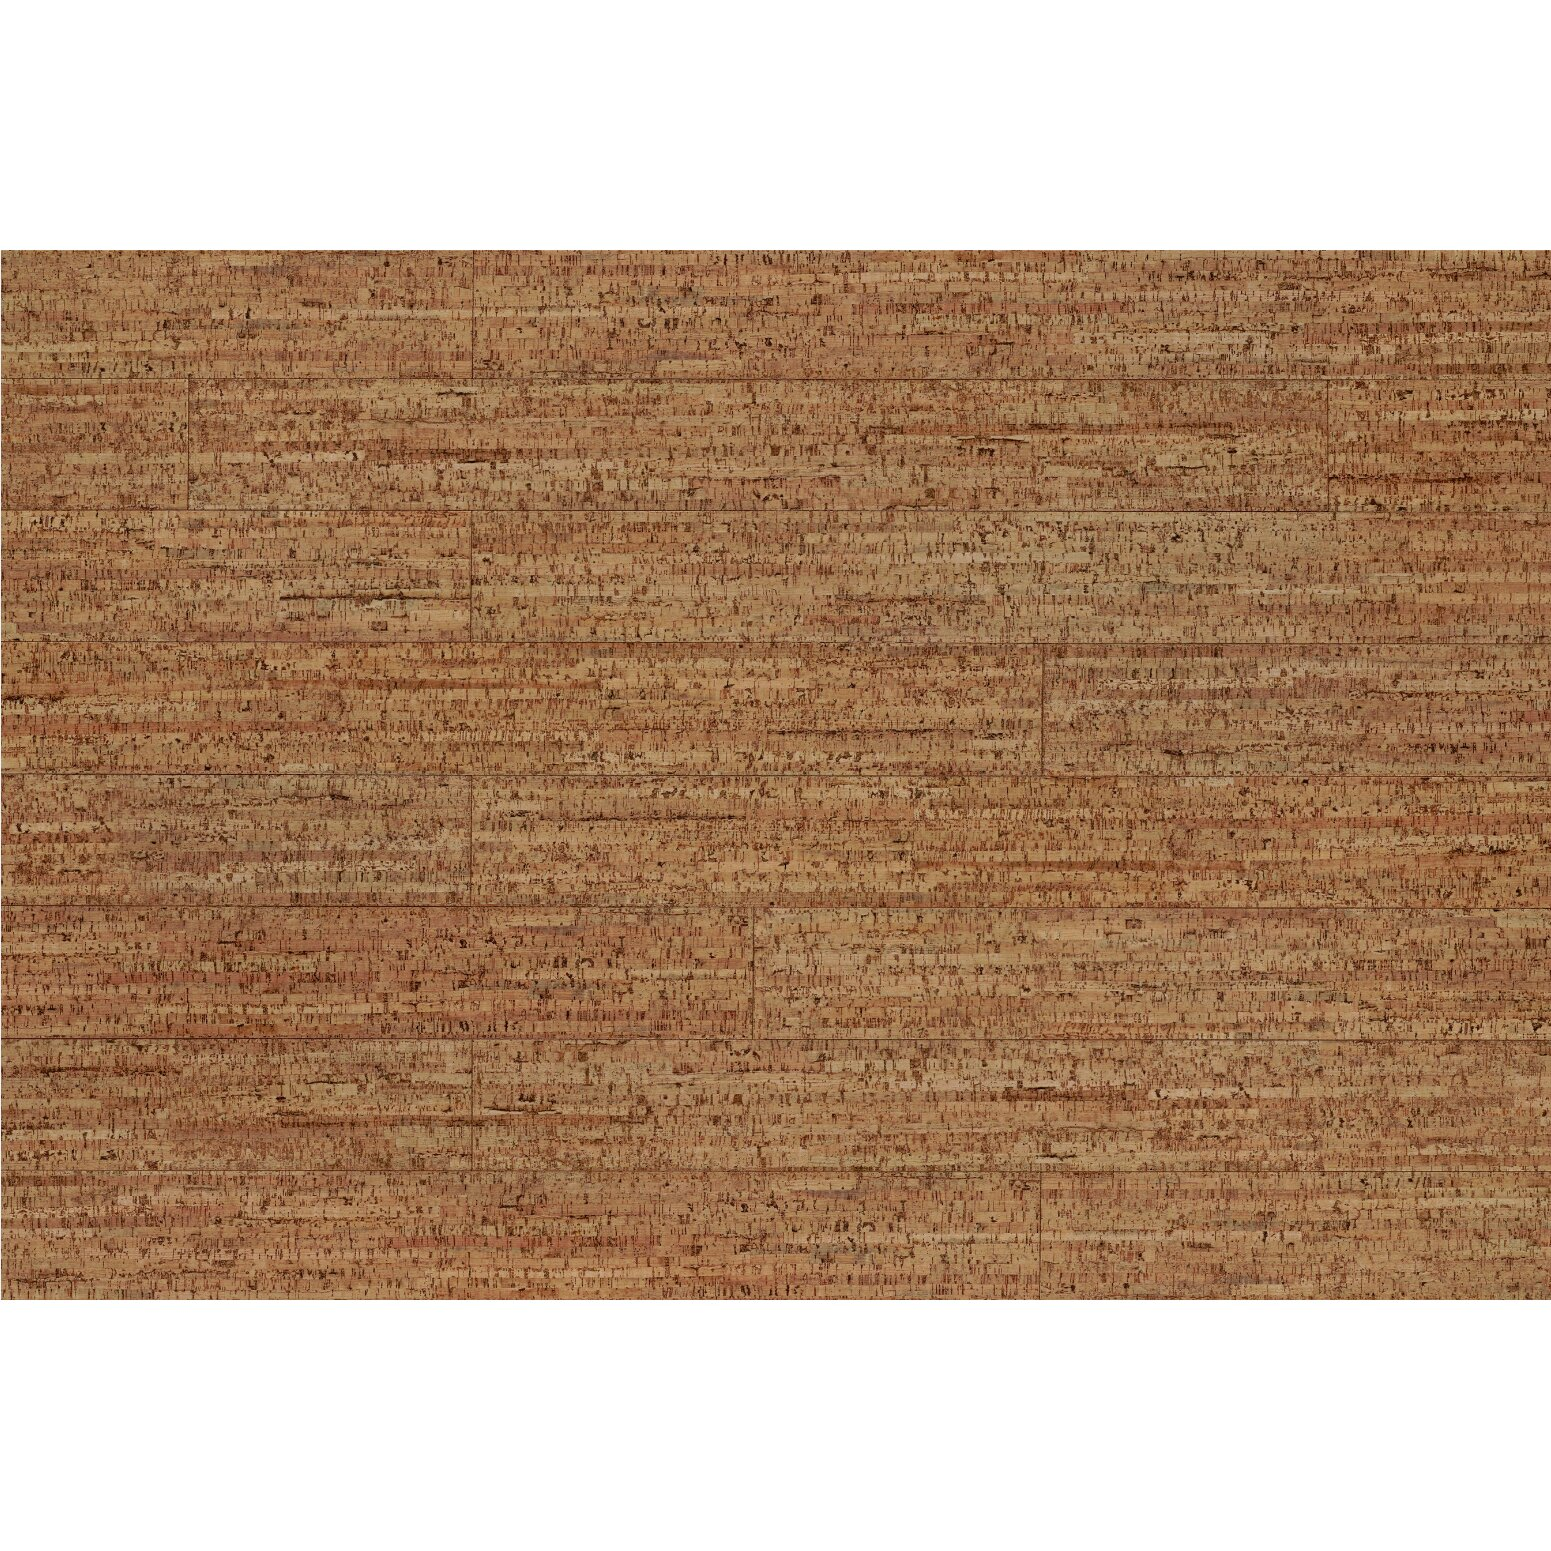 Wicanders Corkcomfort 5 1 2 Engineered Cork Hardwood